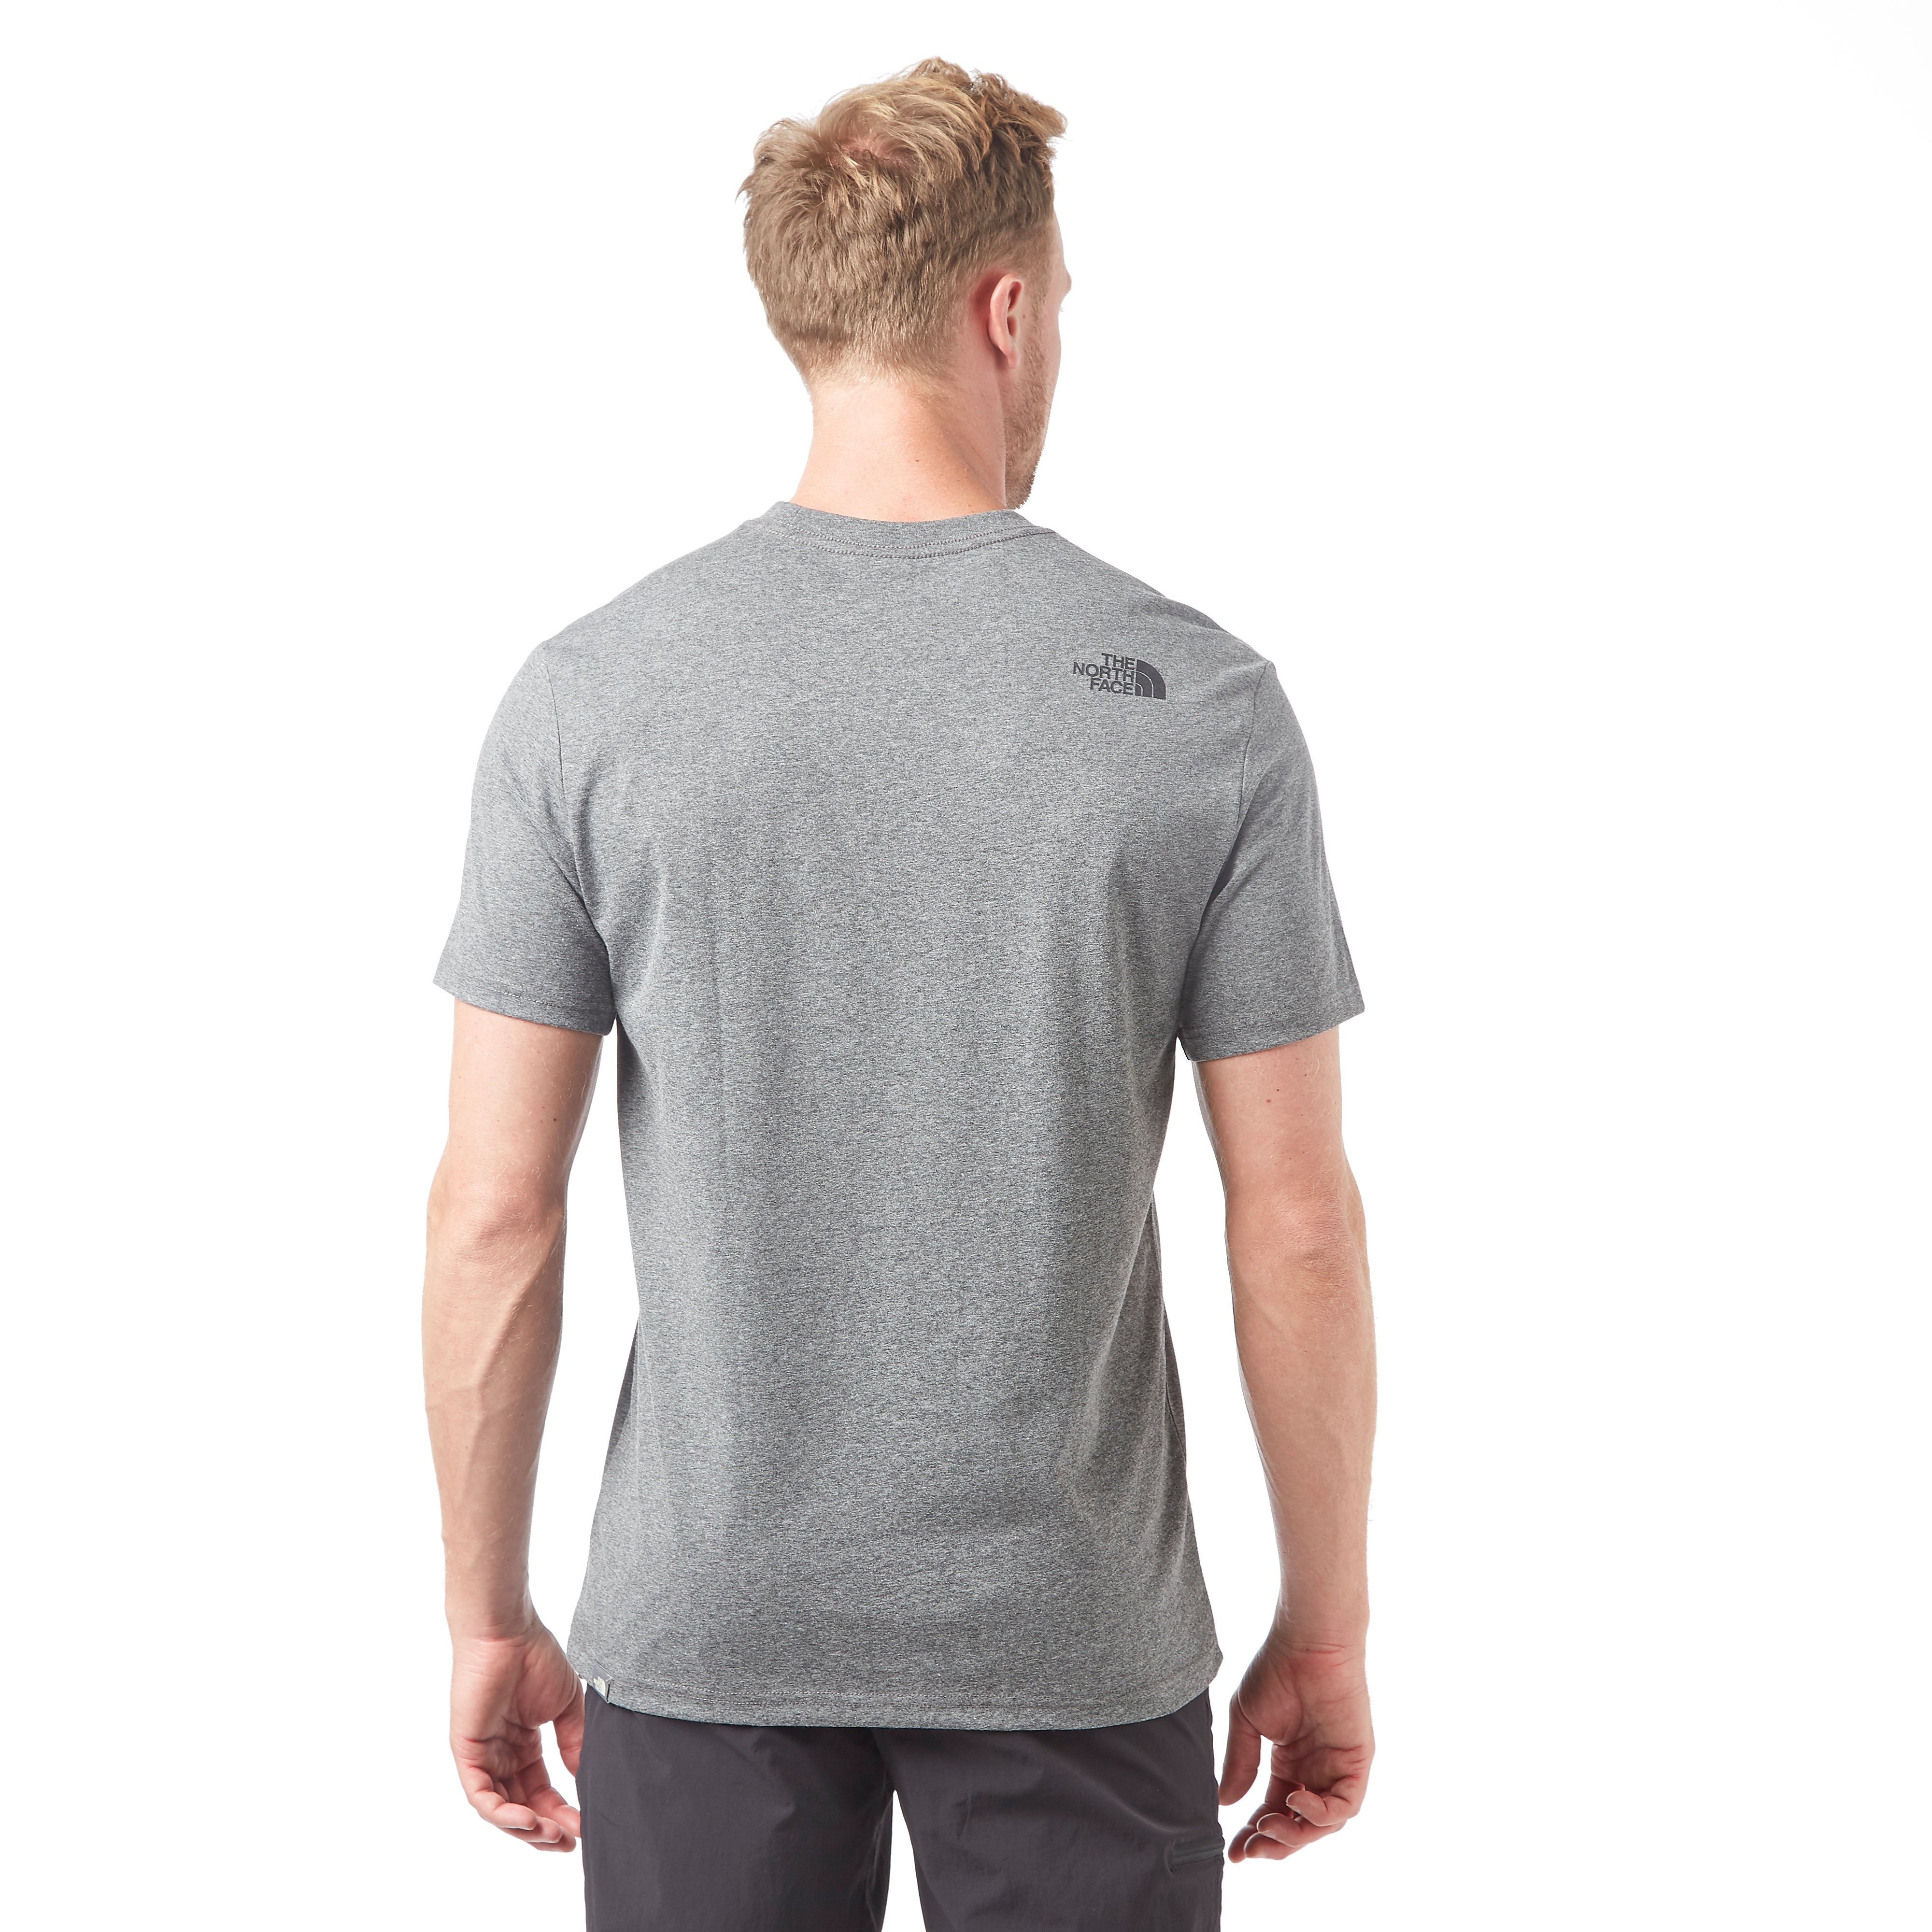 The North Face Men's Never Stop Exploring T-Shirt